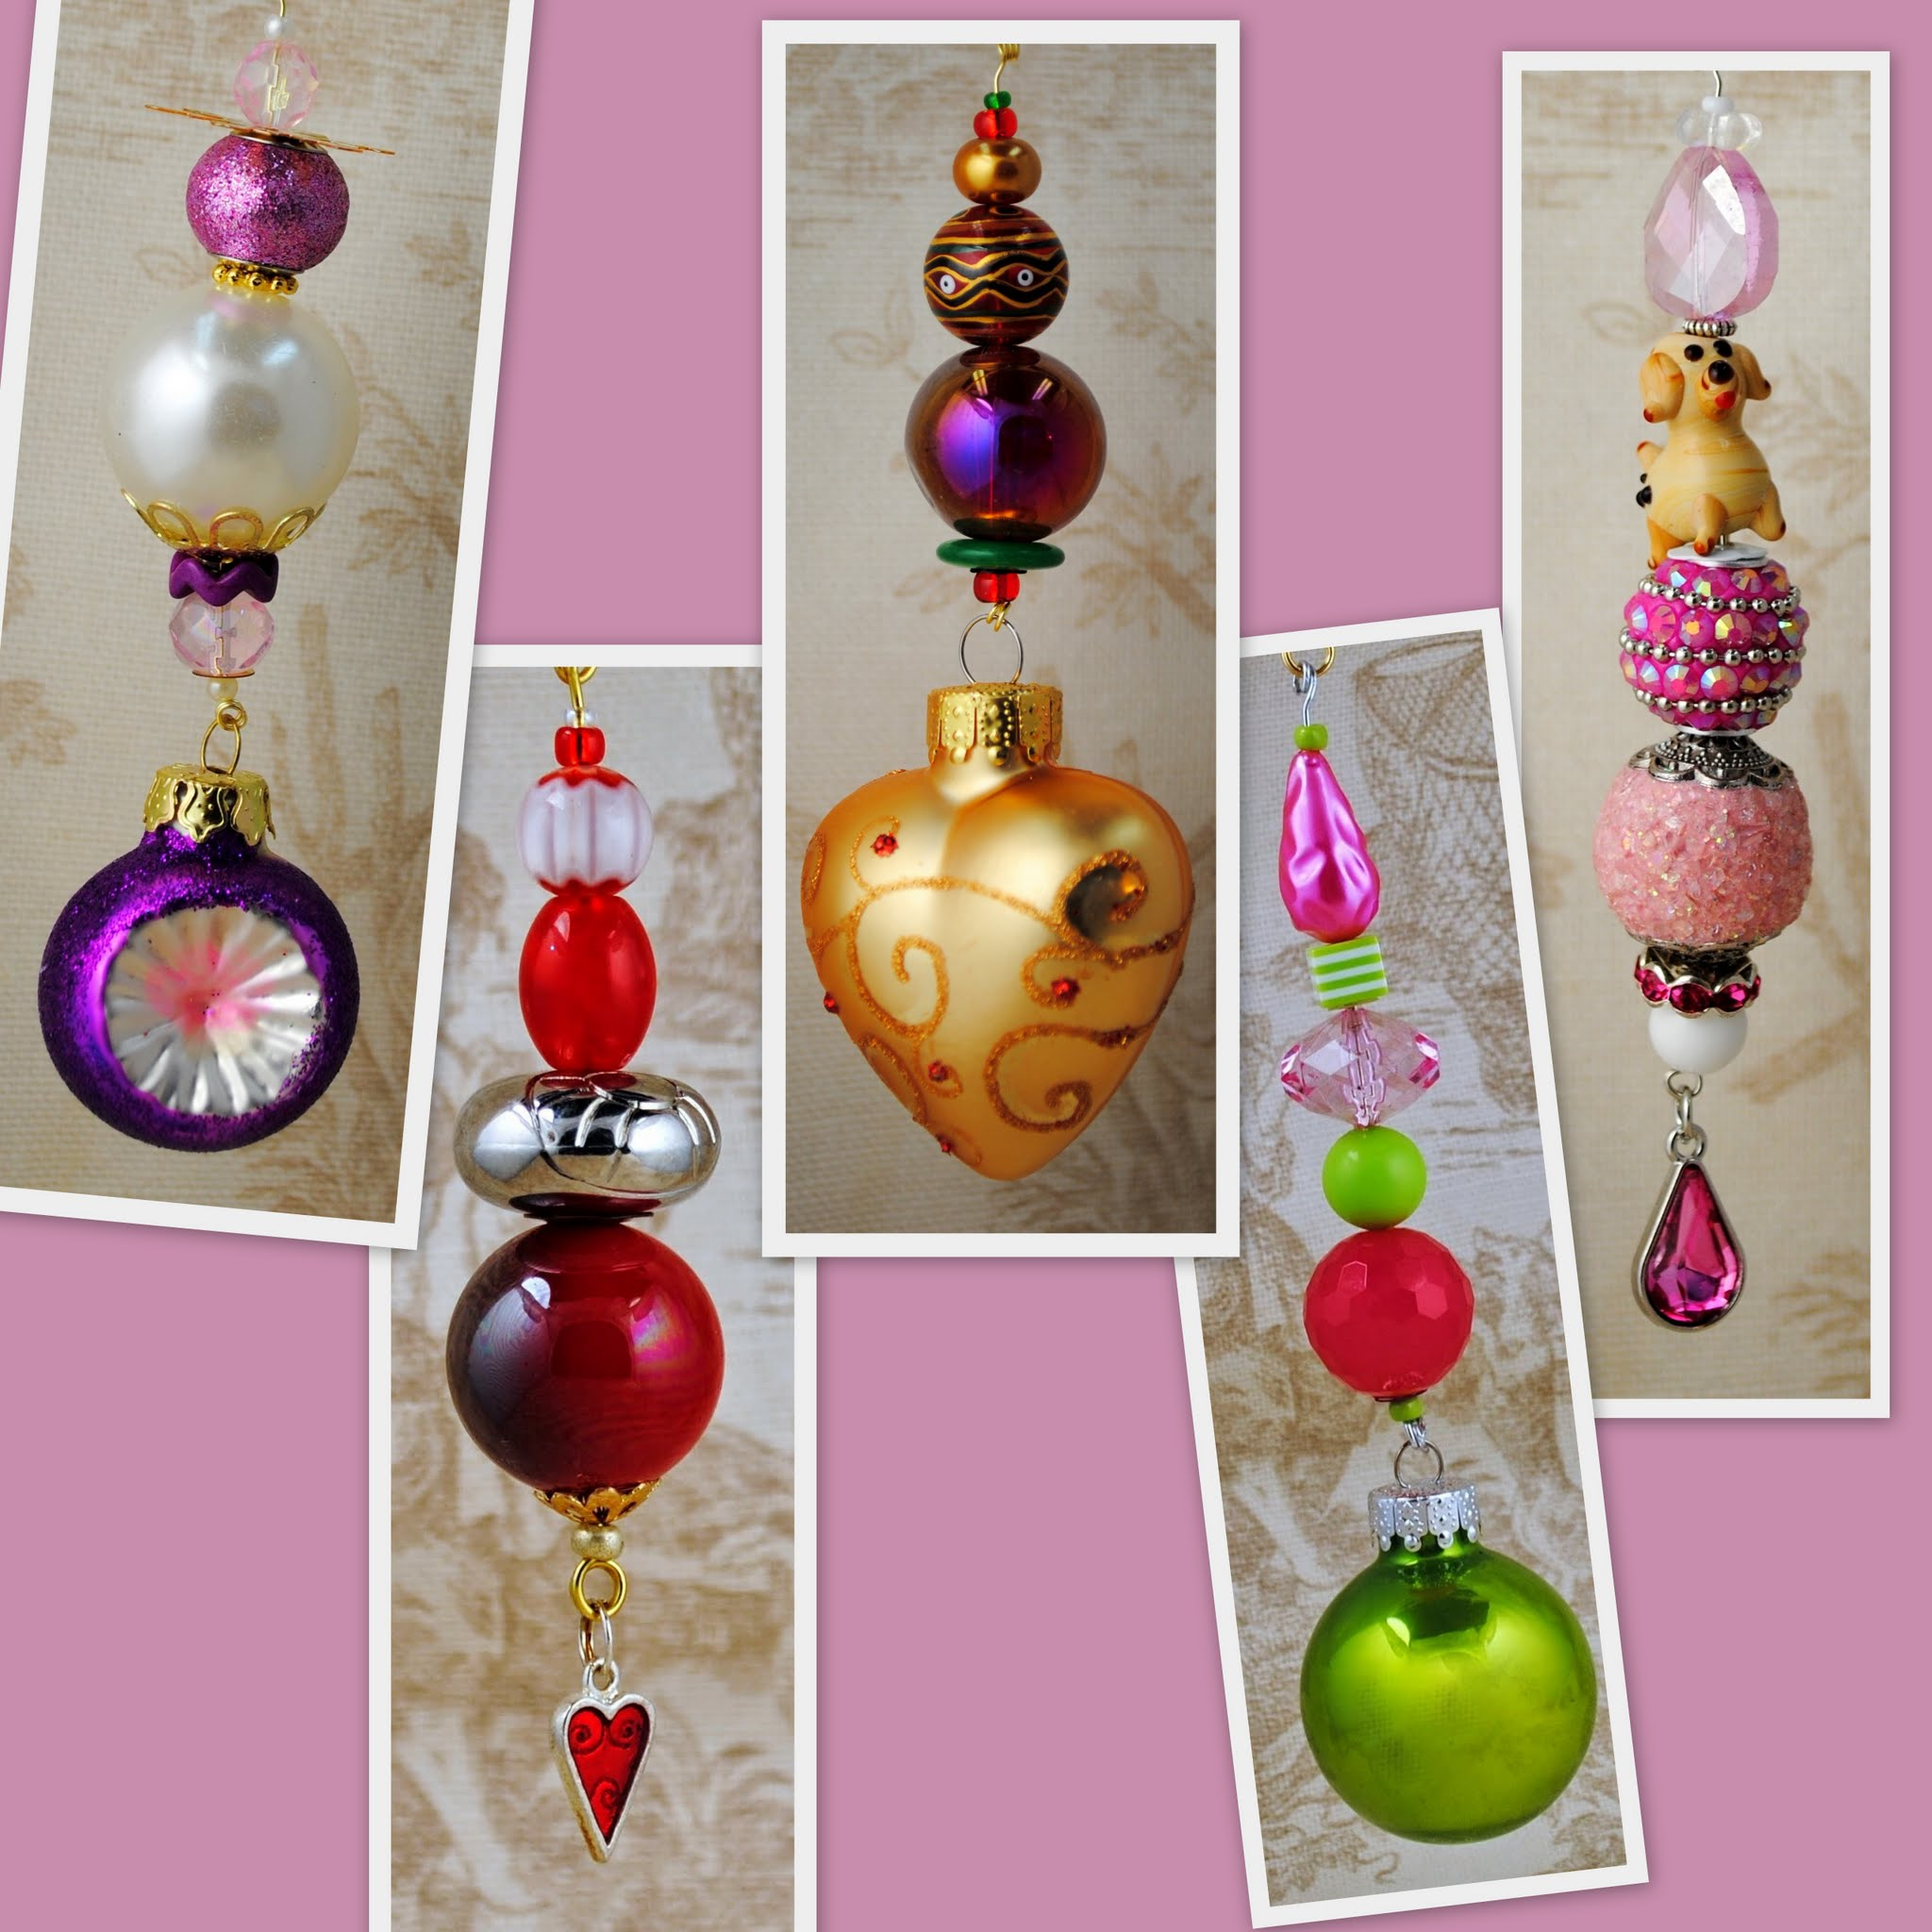 All About Pink Valentine's Day Themed Christmas Ornaments